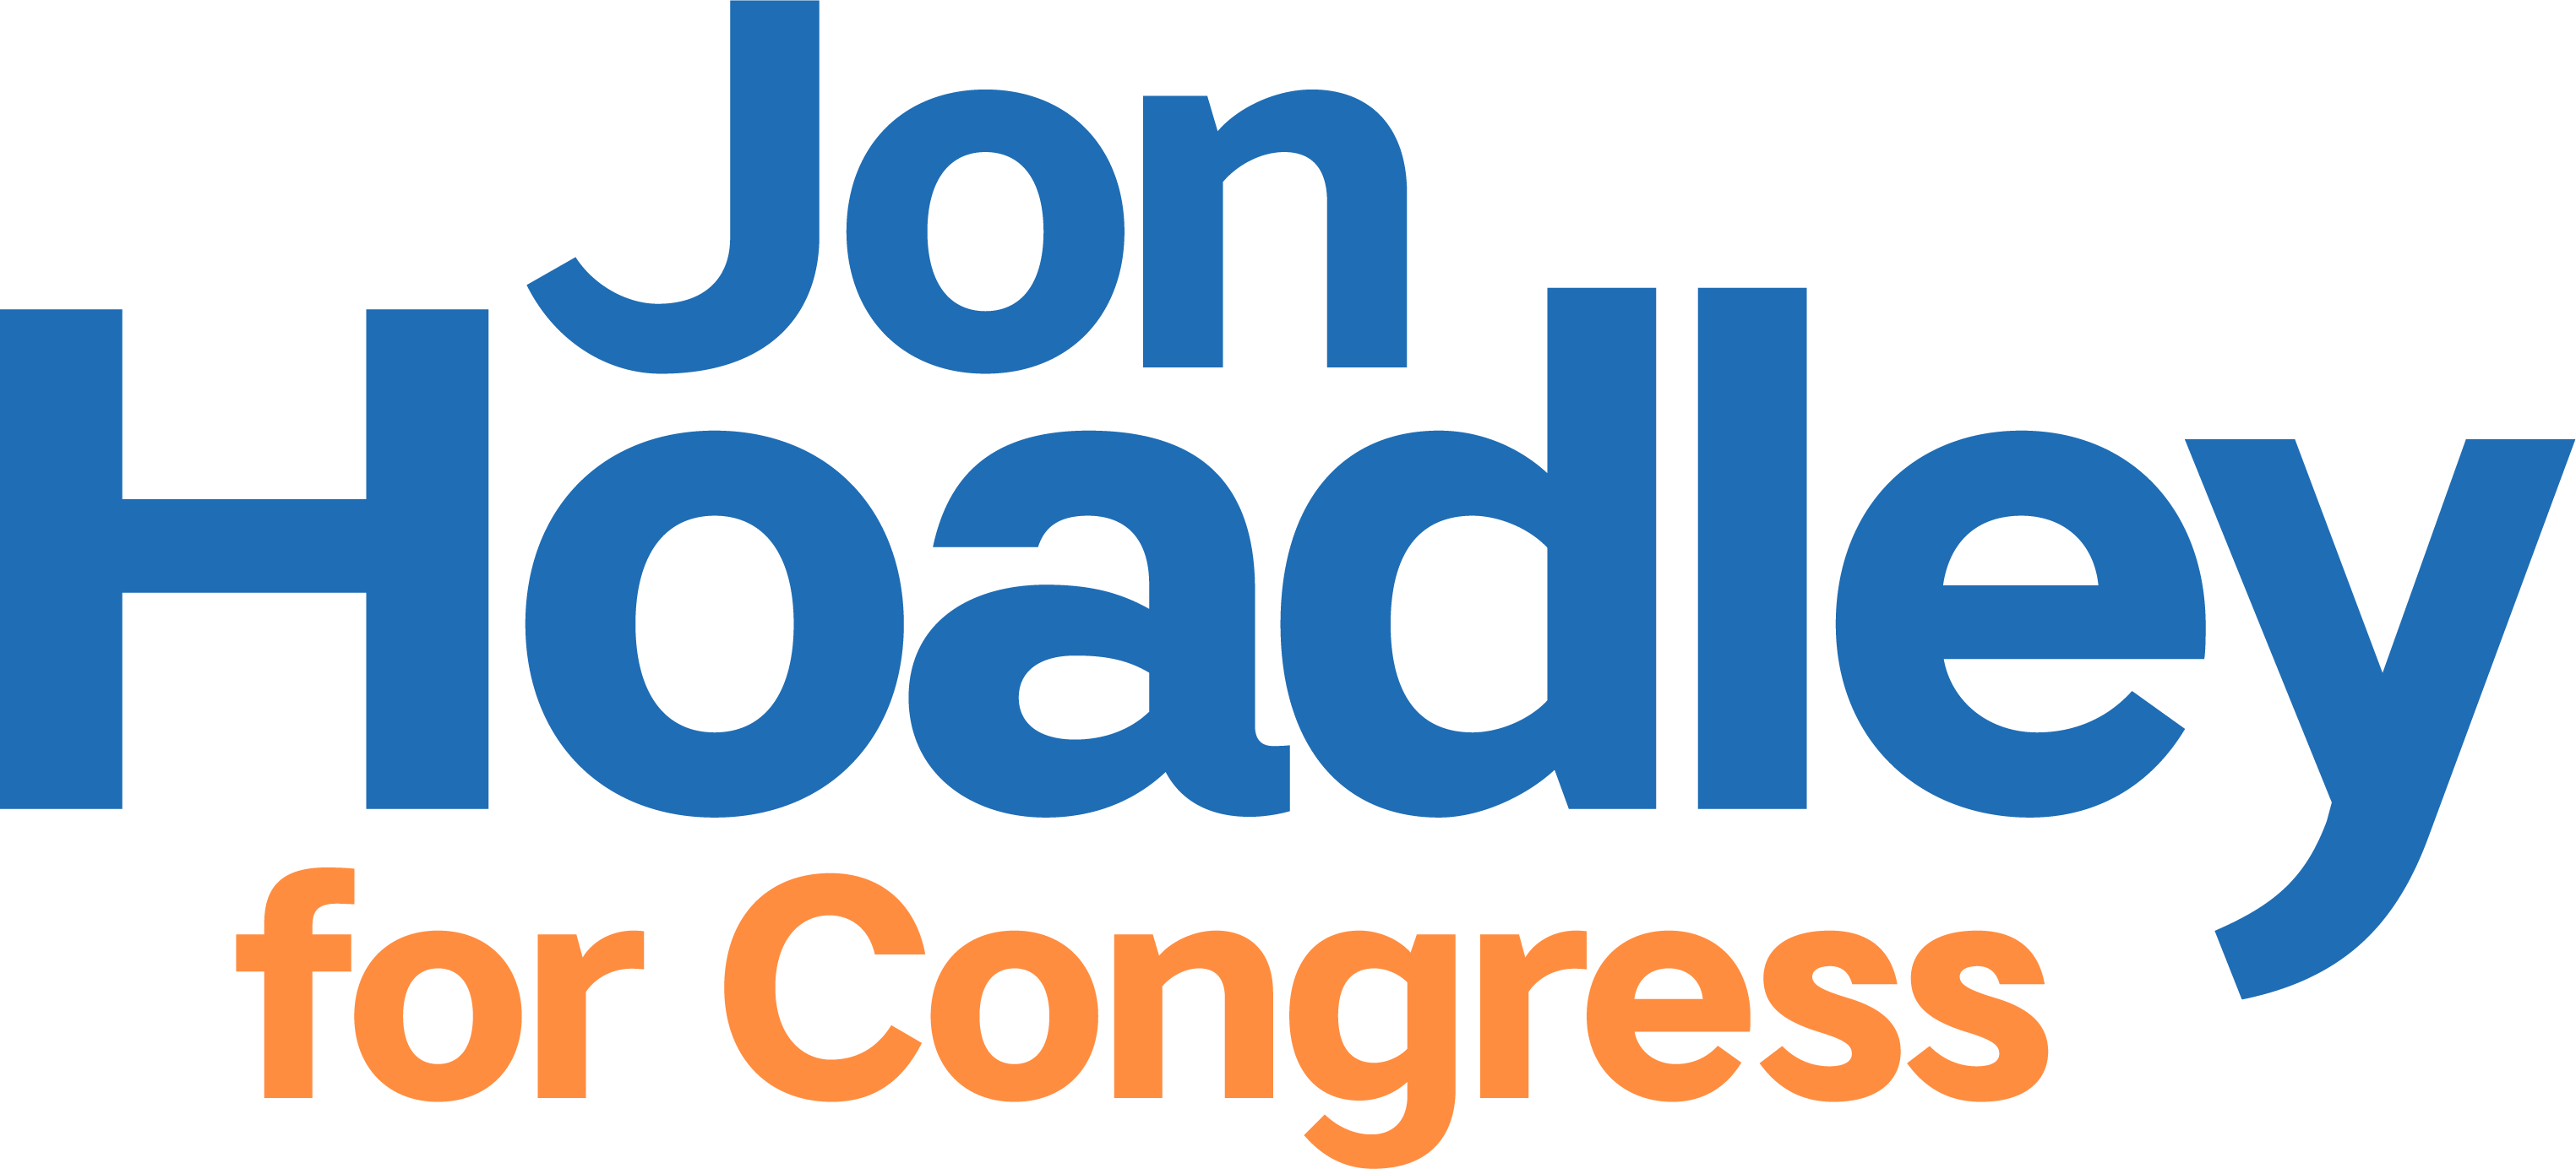 Jon Hoadley for Congress Logo